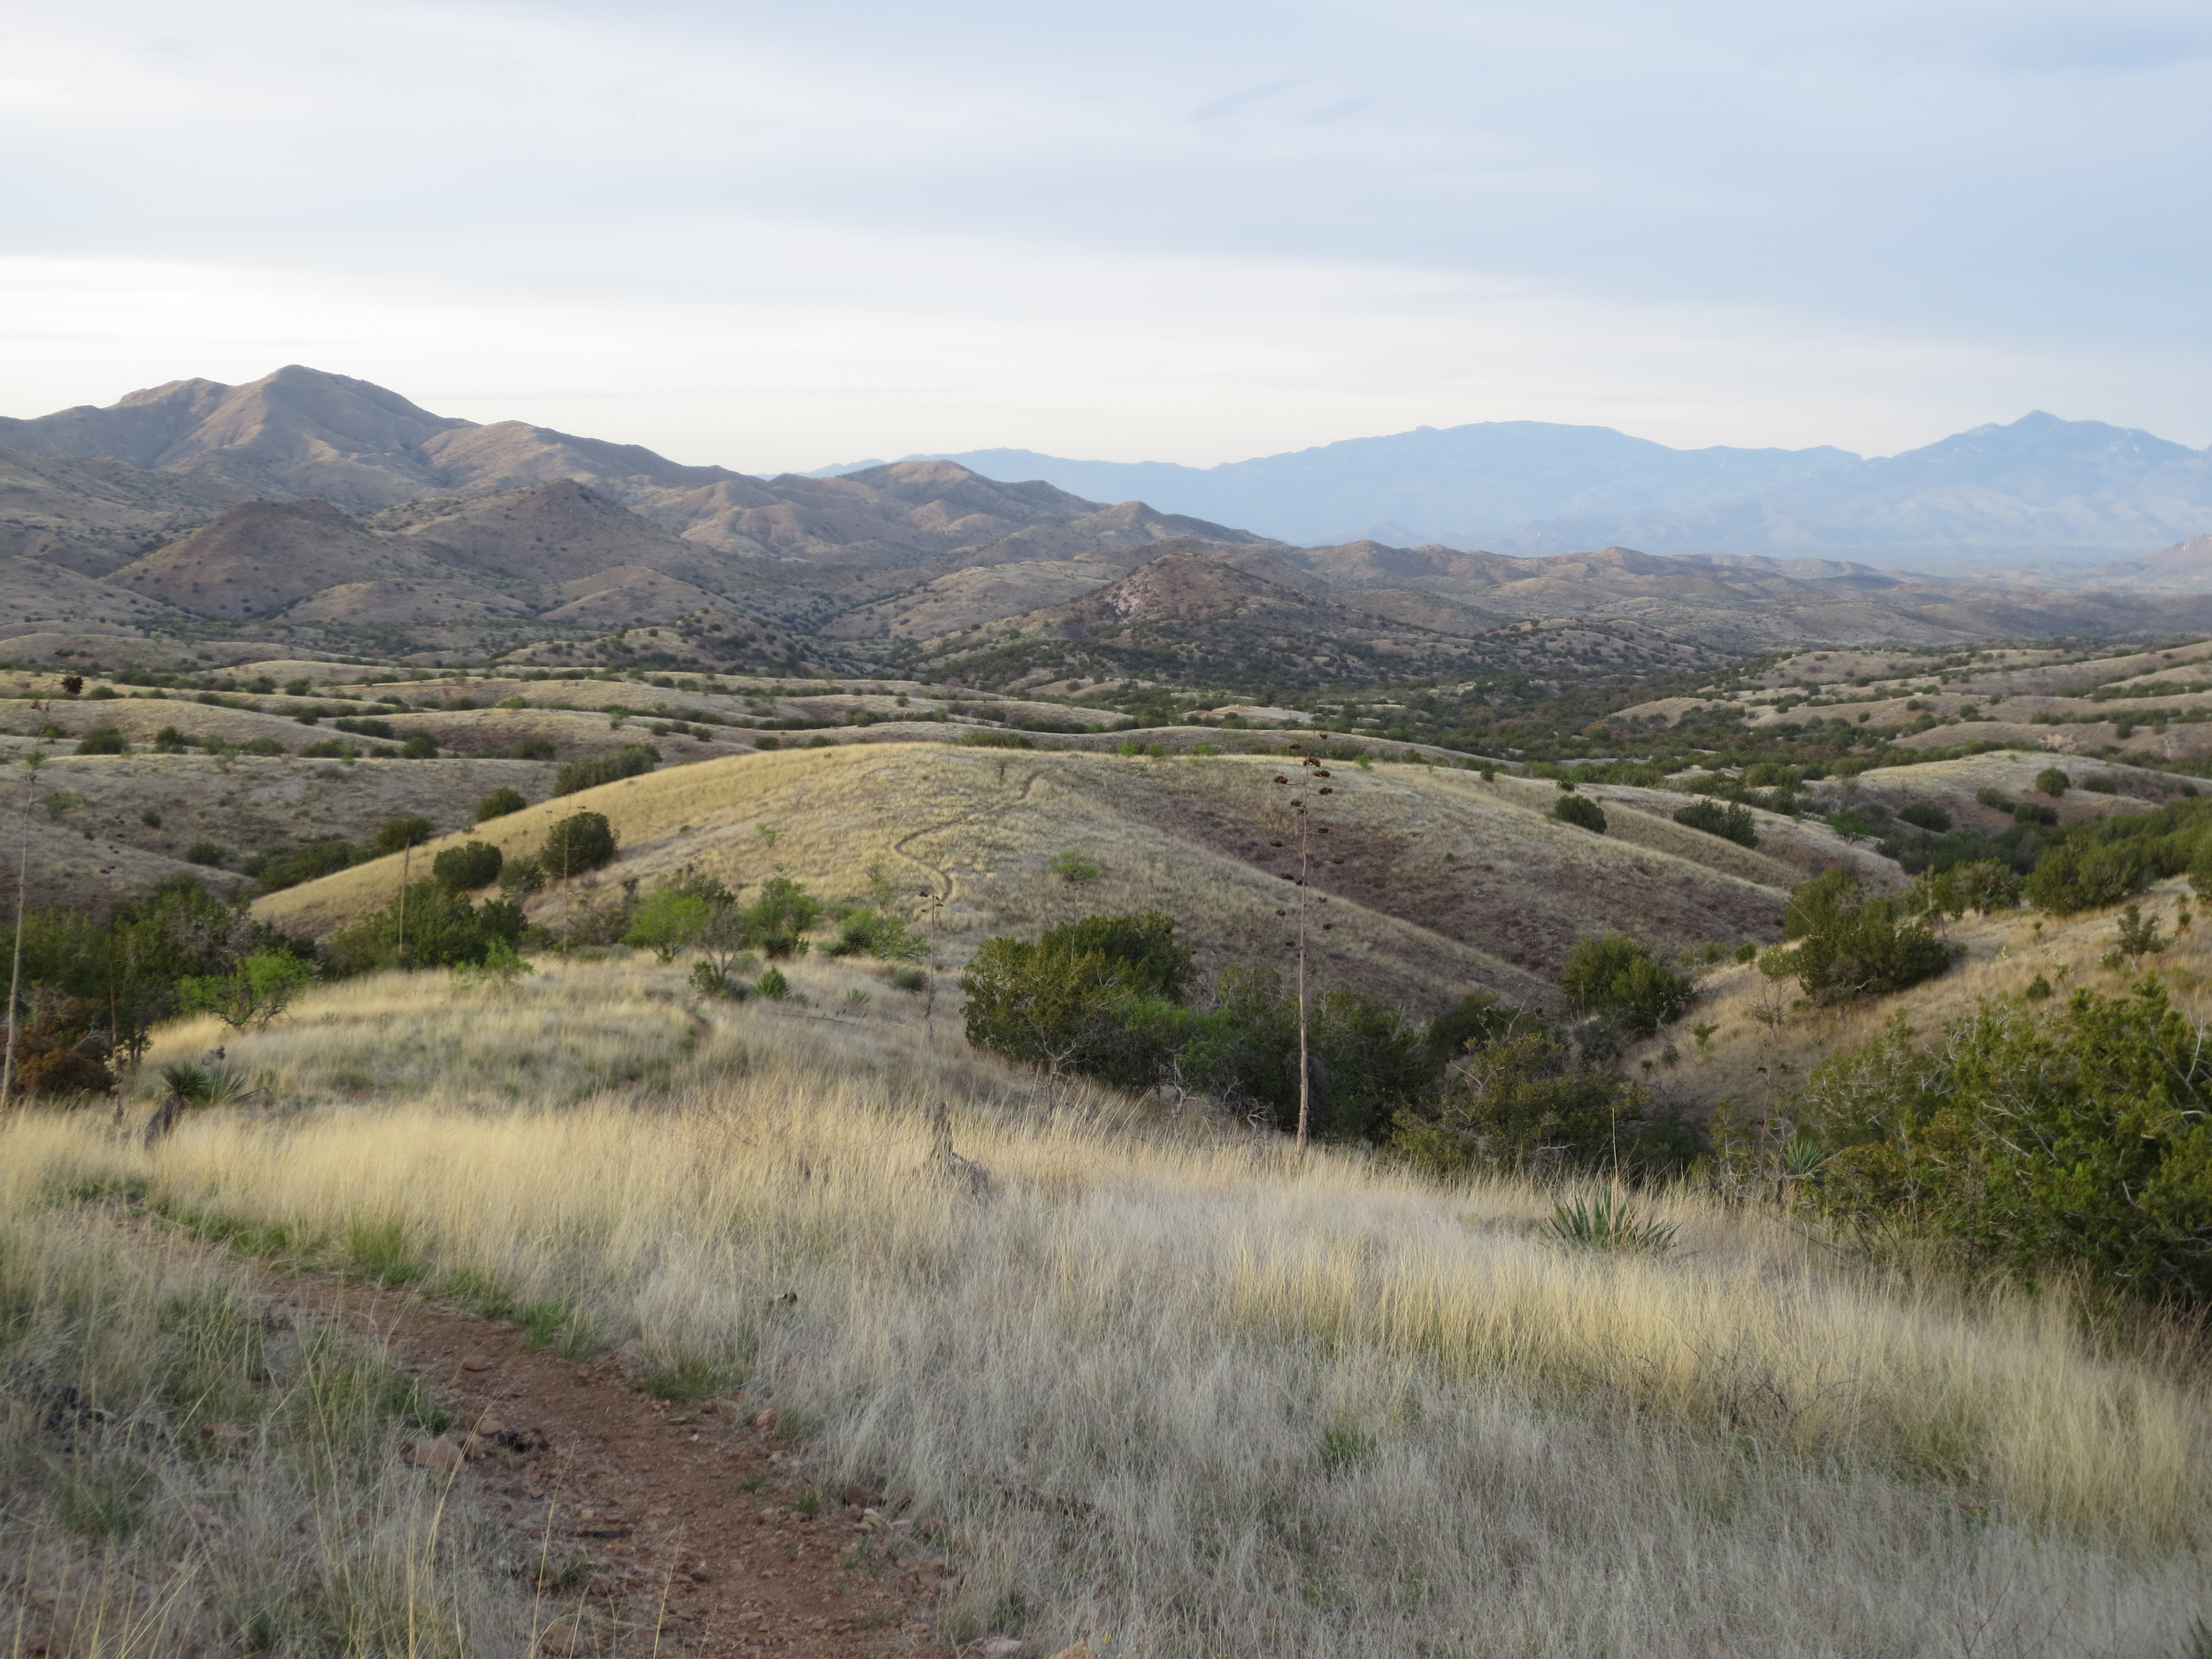 This singletrack in the Las Colinas area just made you feel like you could ride forever.  Or, at least, for several more hours.